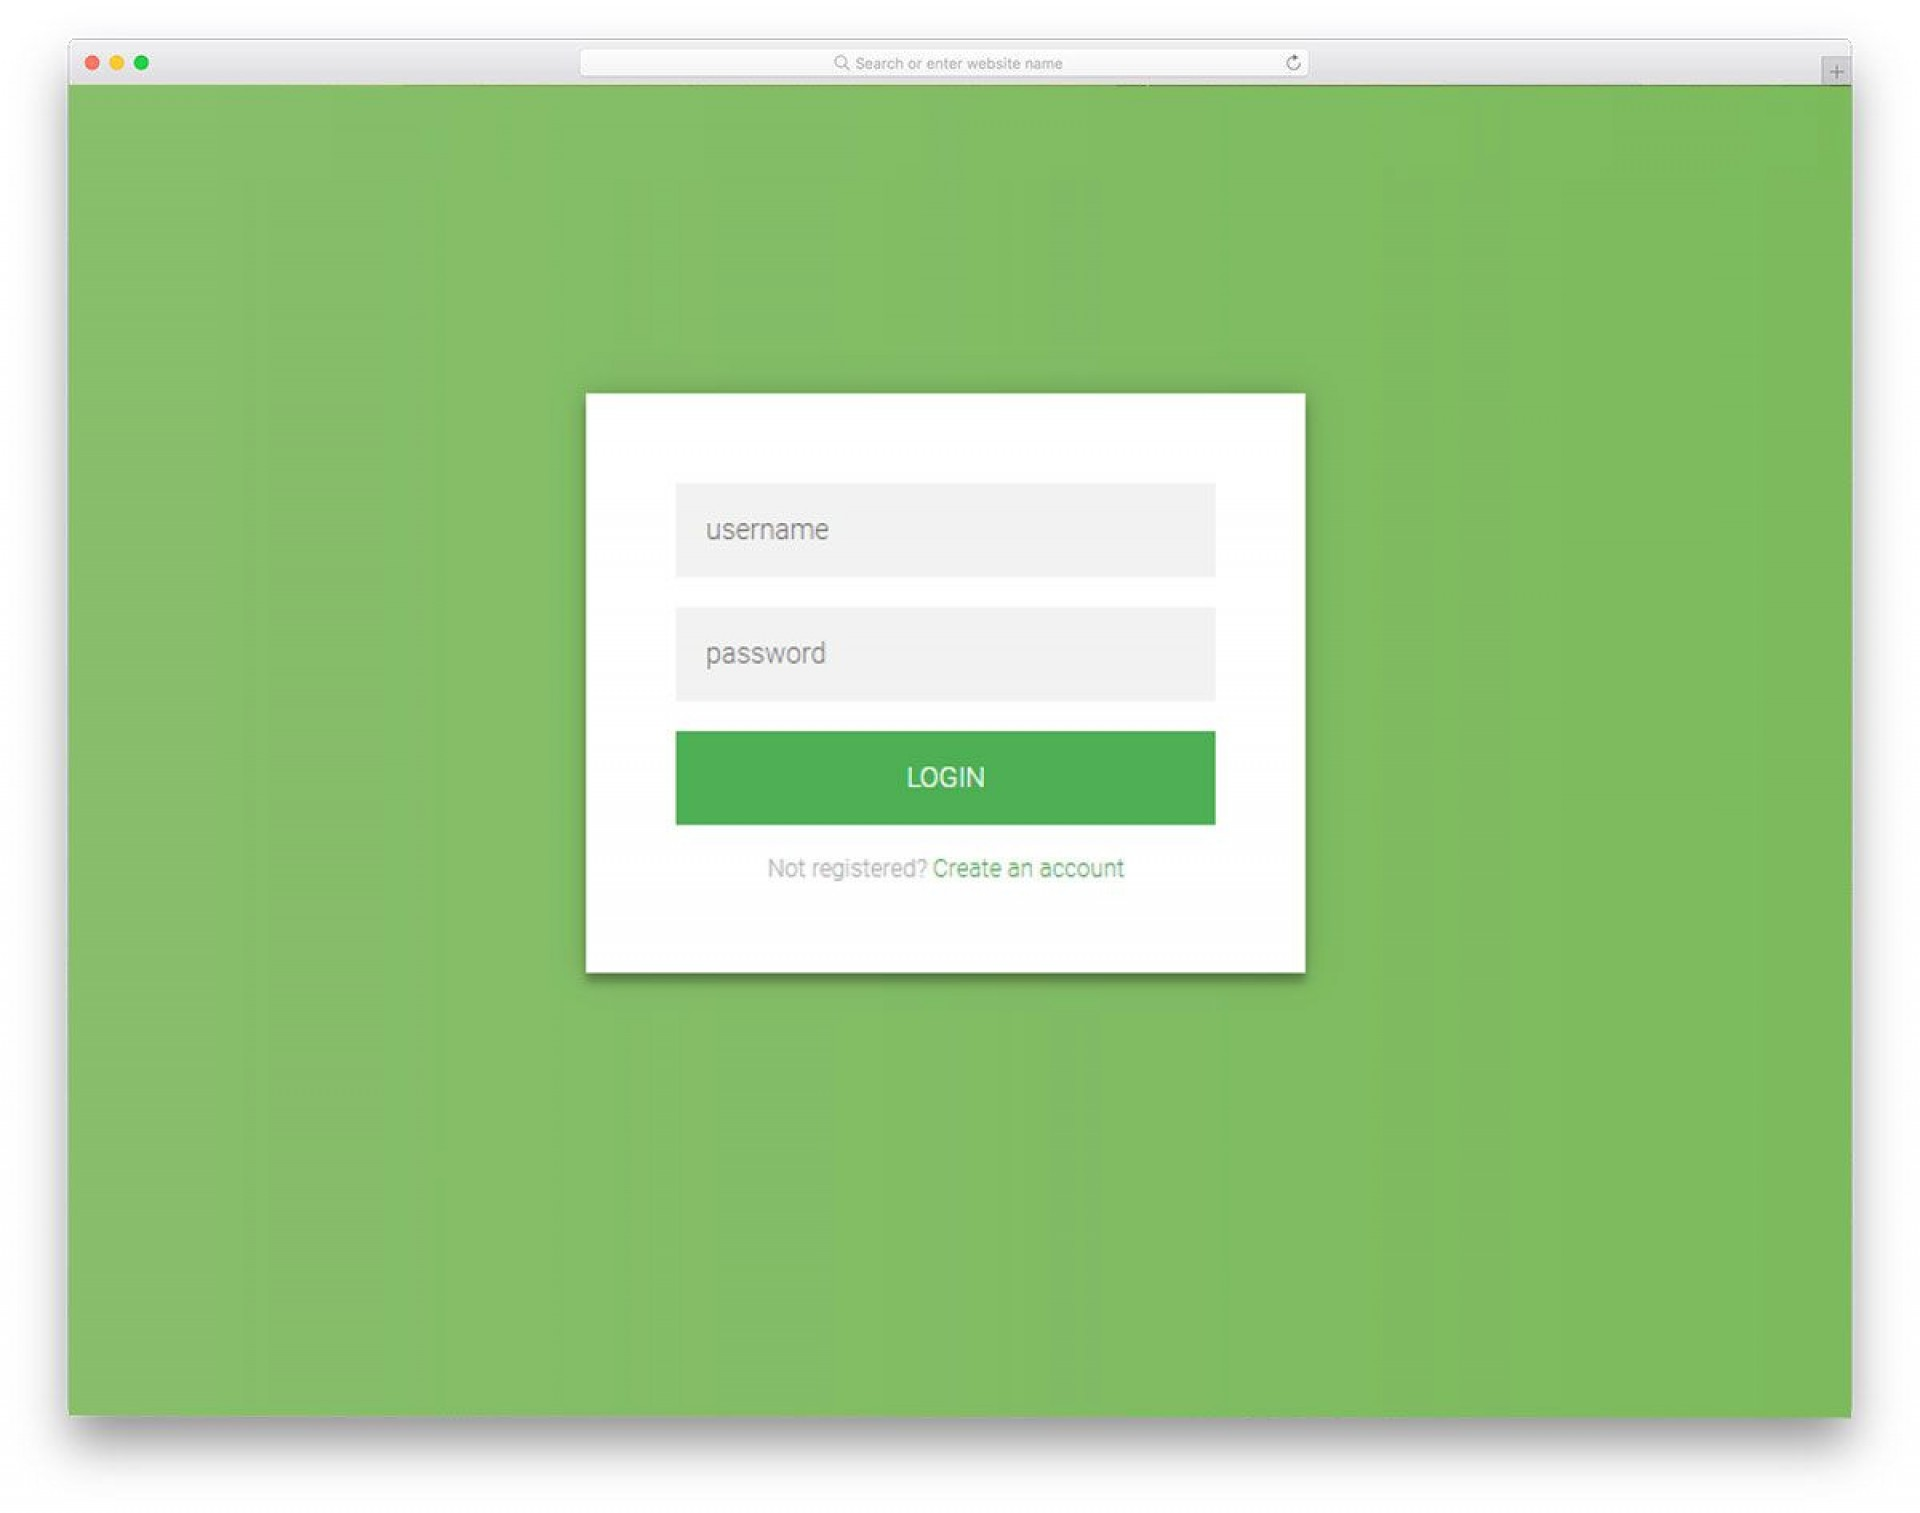 001 Wonderful Html Login Page Template Idea  Download Without Cs Bootstrap 41920